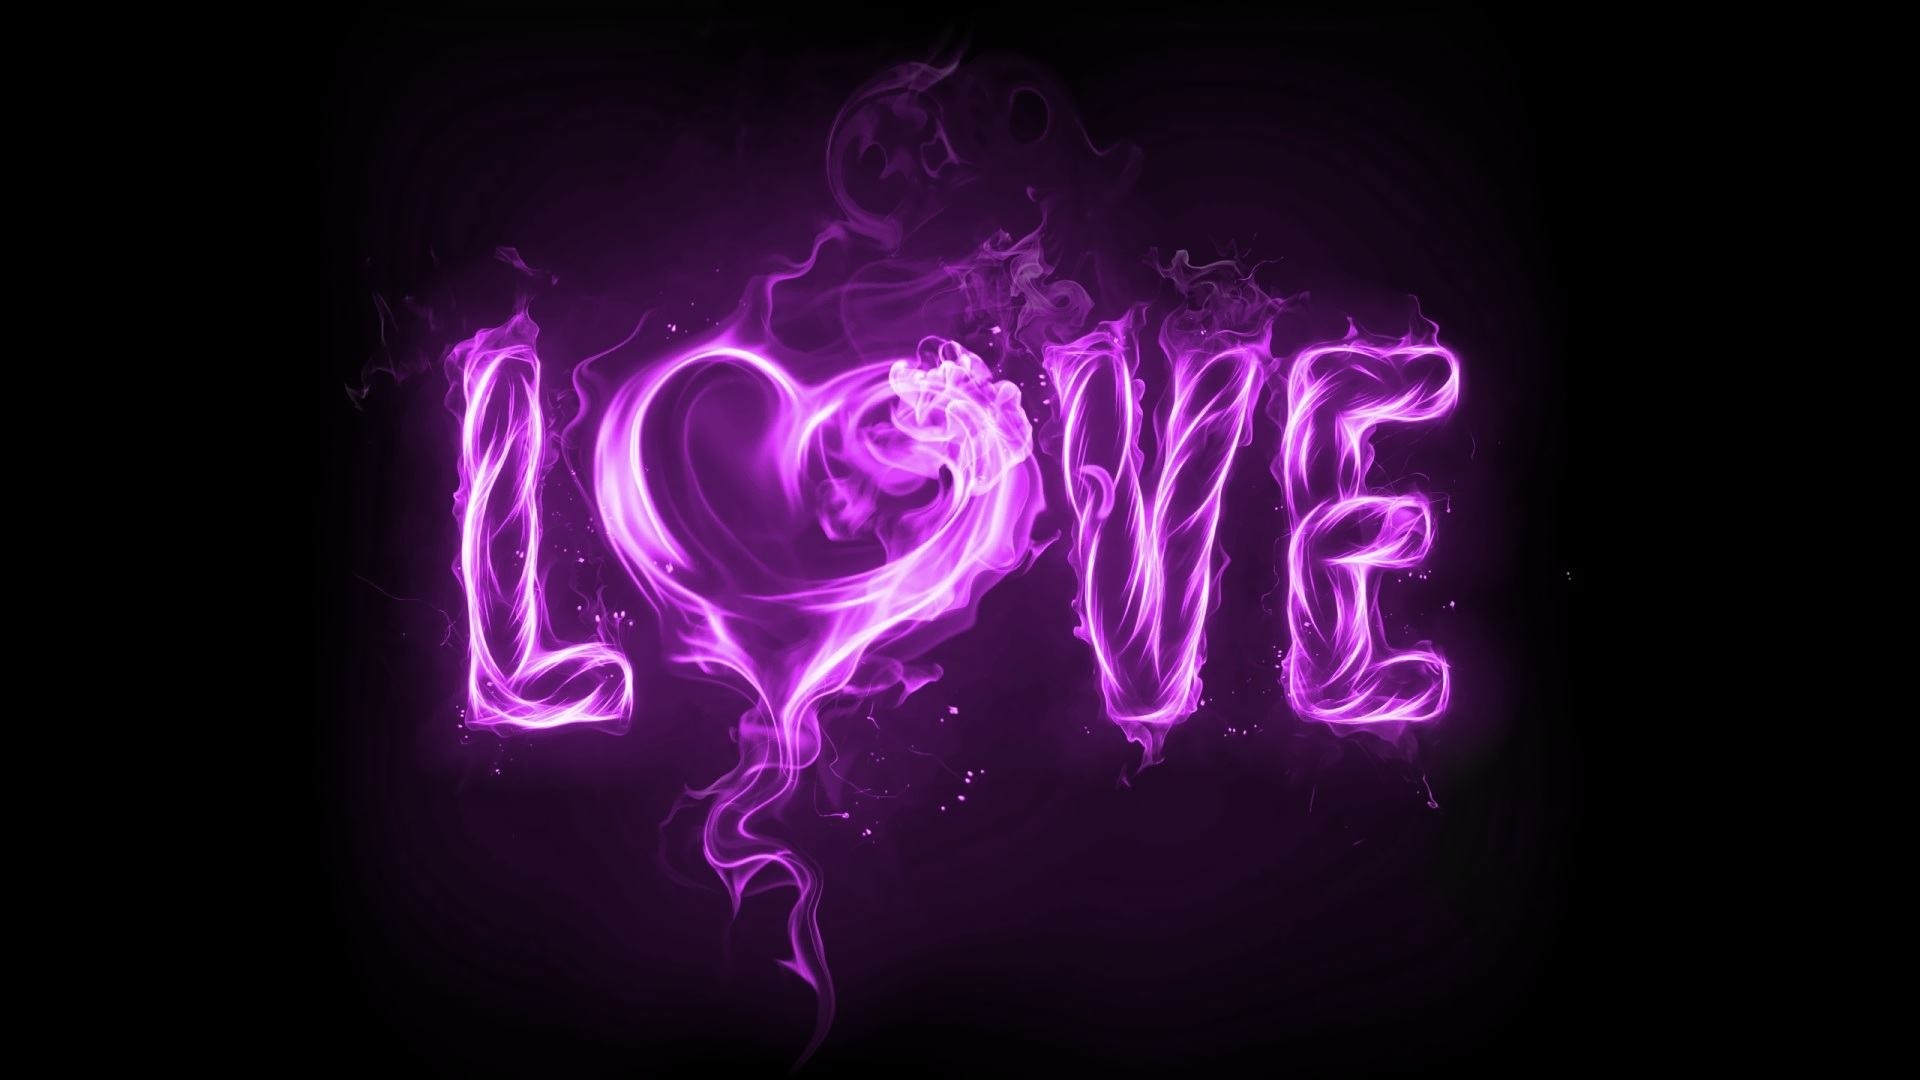 Wallpapers Backgrounds   wallpaper love purple backgrounds 1920x1080